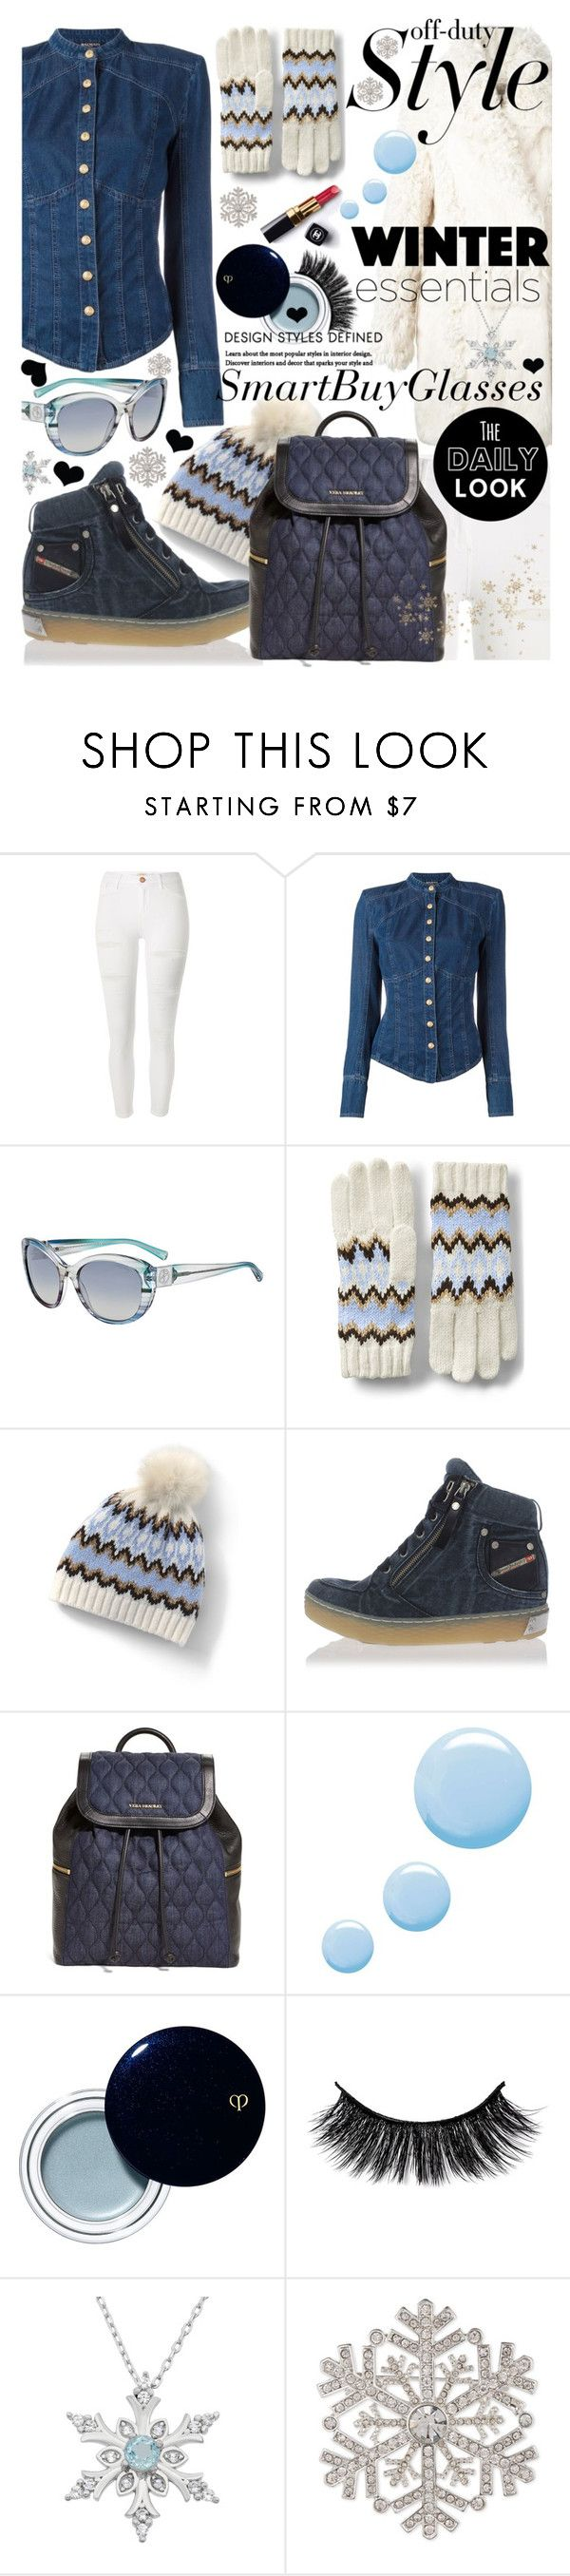 """""""Winter Look with the New Sunglasses - SmartBuyGlasses-UK!!!"""" by anin-kutak ❤ liked on Polyvore featuring River Island, Balmain, Giorgio Armani, Lands' End, Diesel, Vera Bradley, Topshop, Clé de Peau Beauté, Chanel and Anne Klein"""